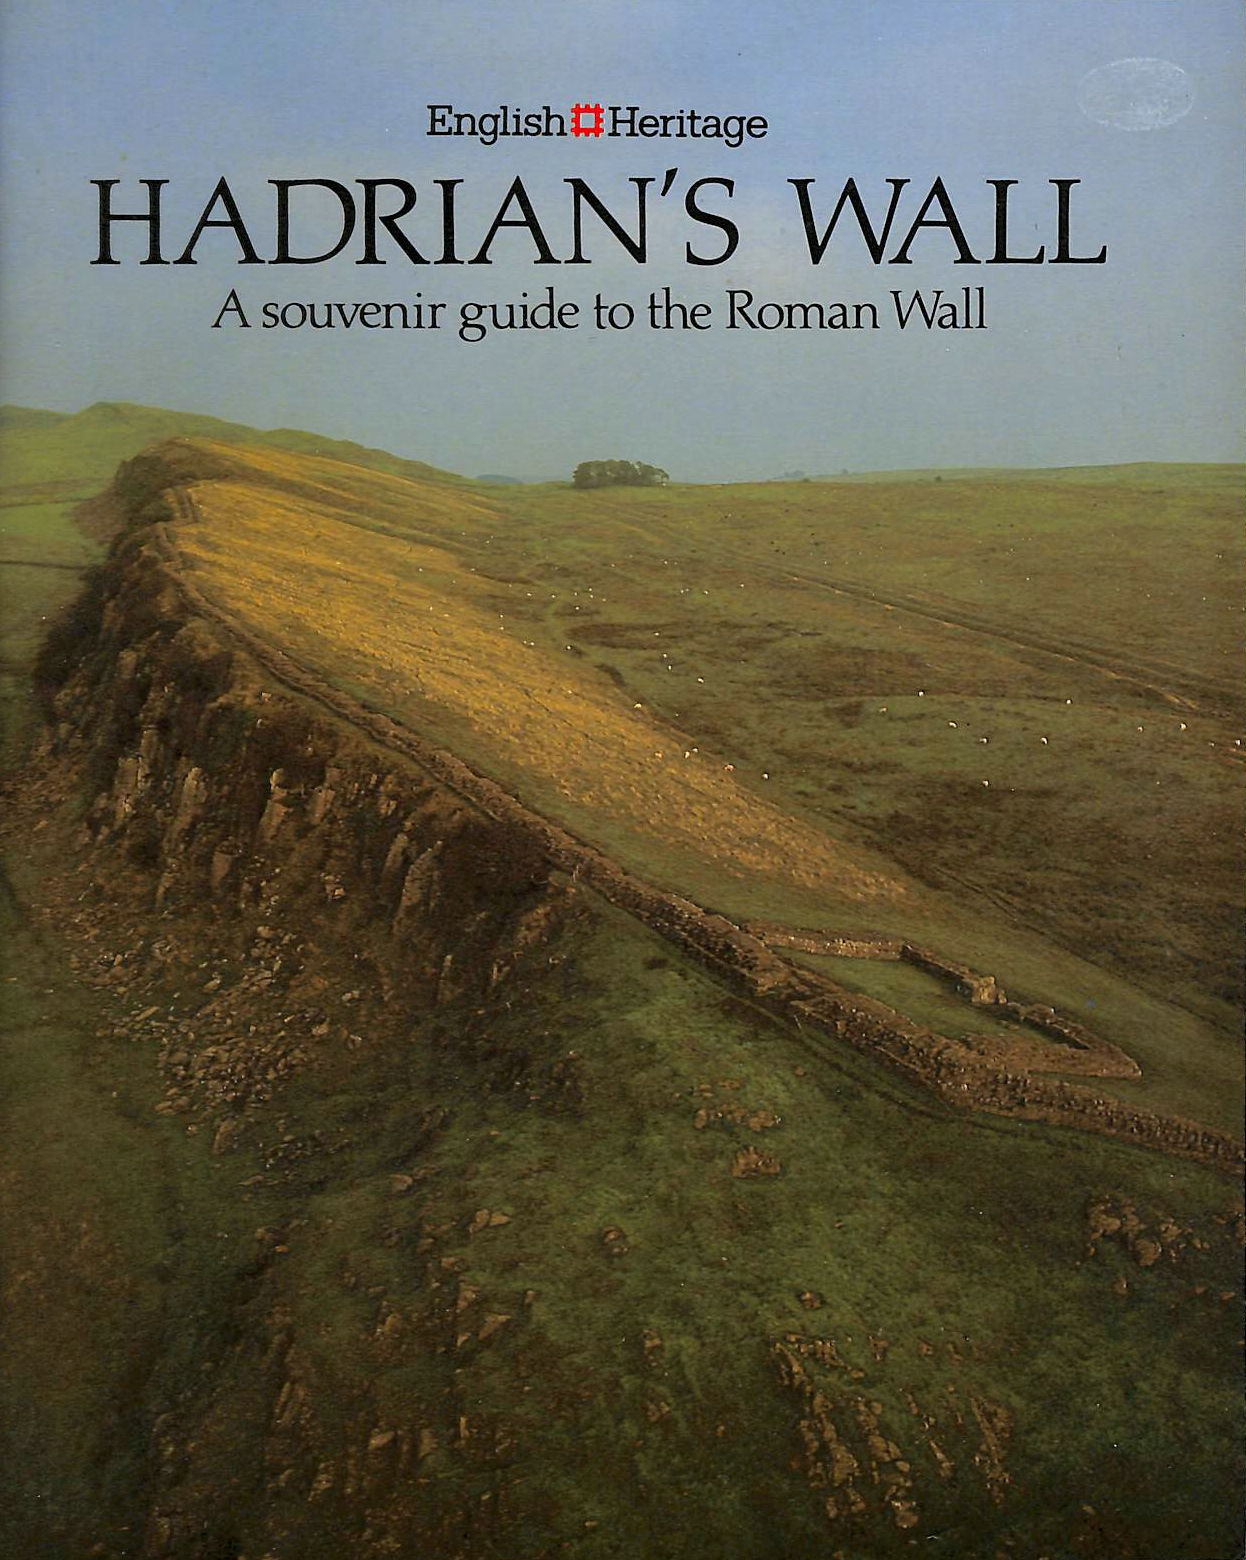 Image for HADRIAN'S WALL: A SOUVENIR GUIDE TO THE ROMAN WALL.